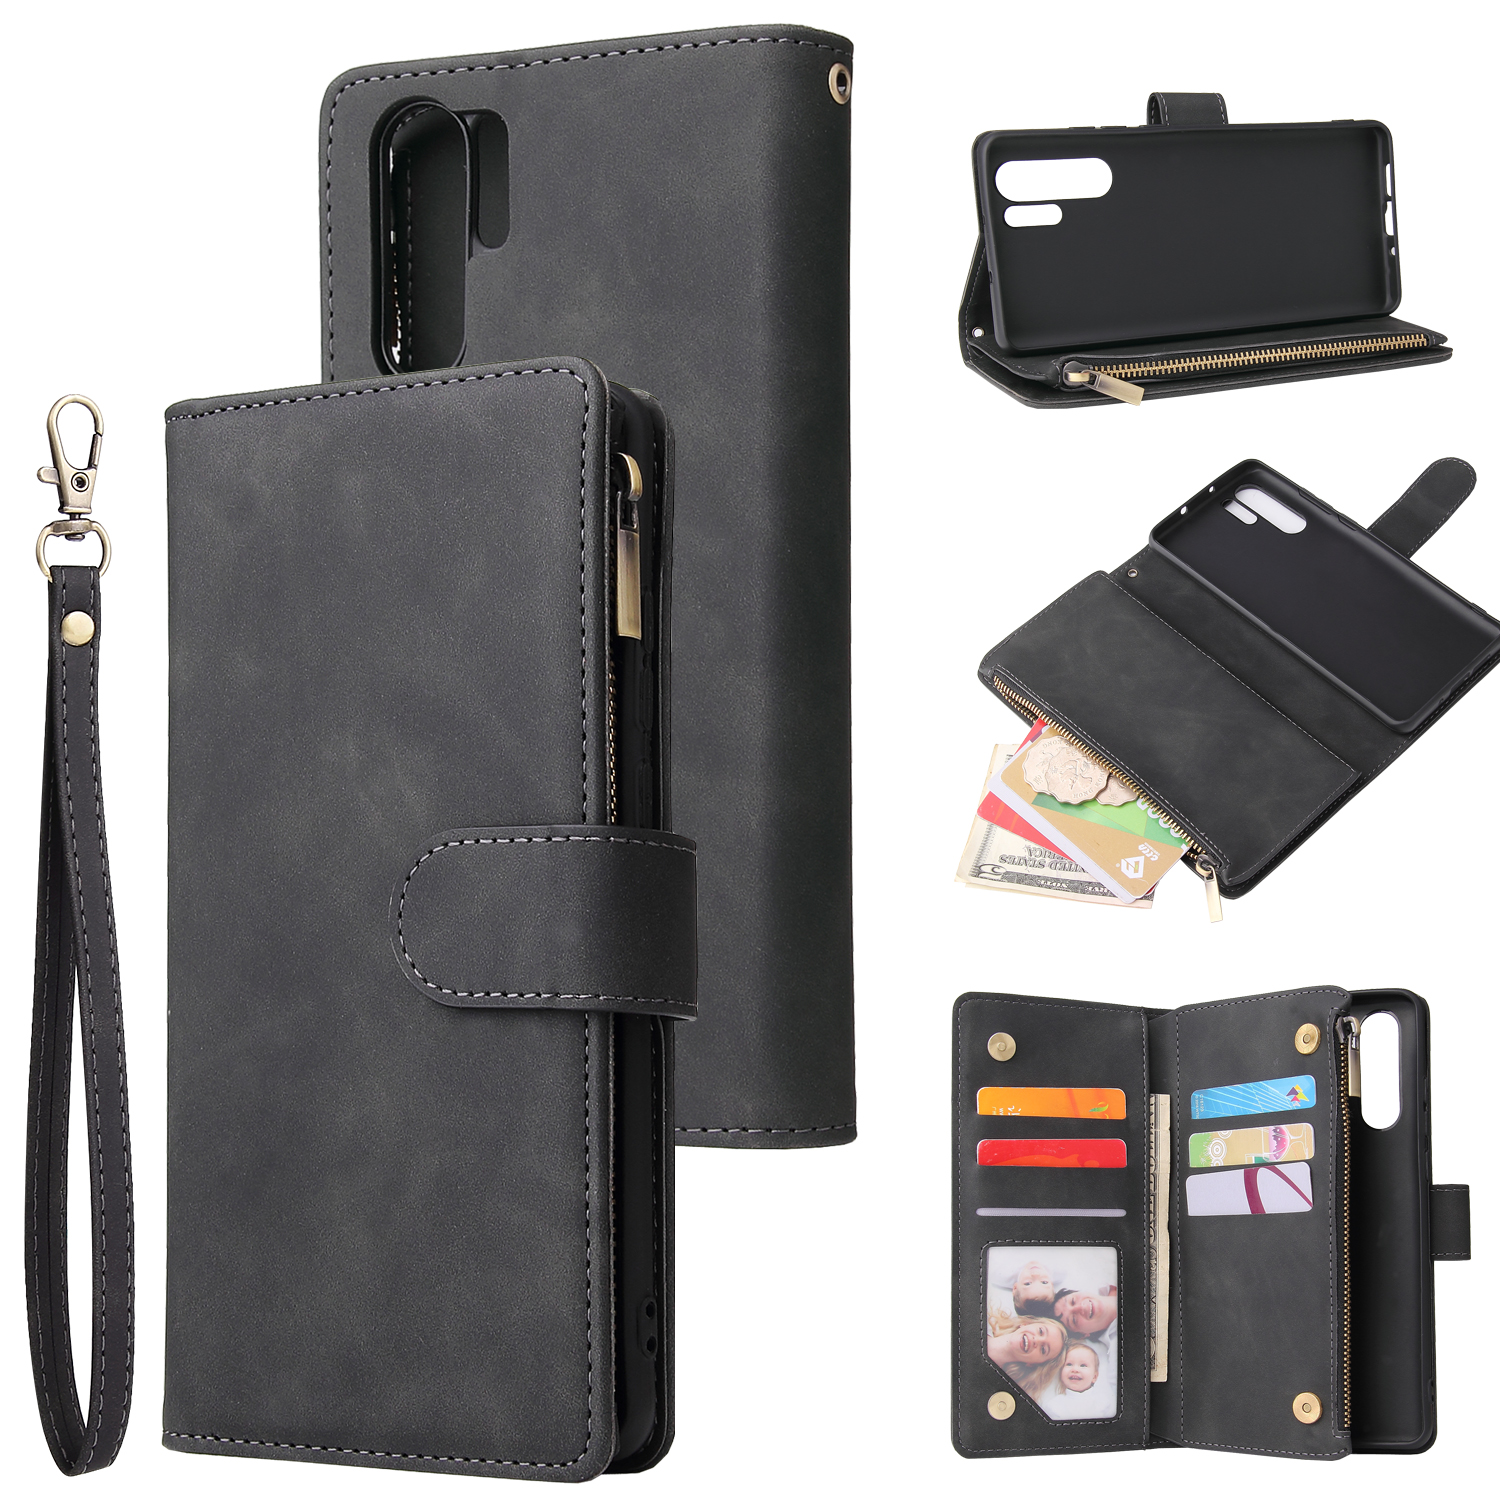 For HUAWEI P30 HUAWEI P30 lite HUAWEI P30 pro Multi-card Bracket Coin Wallet Zipper Mobile Phone PU Leather Phone Case  1 black